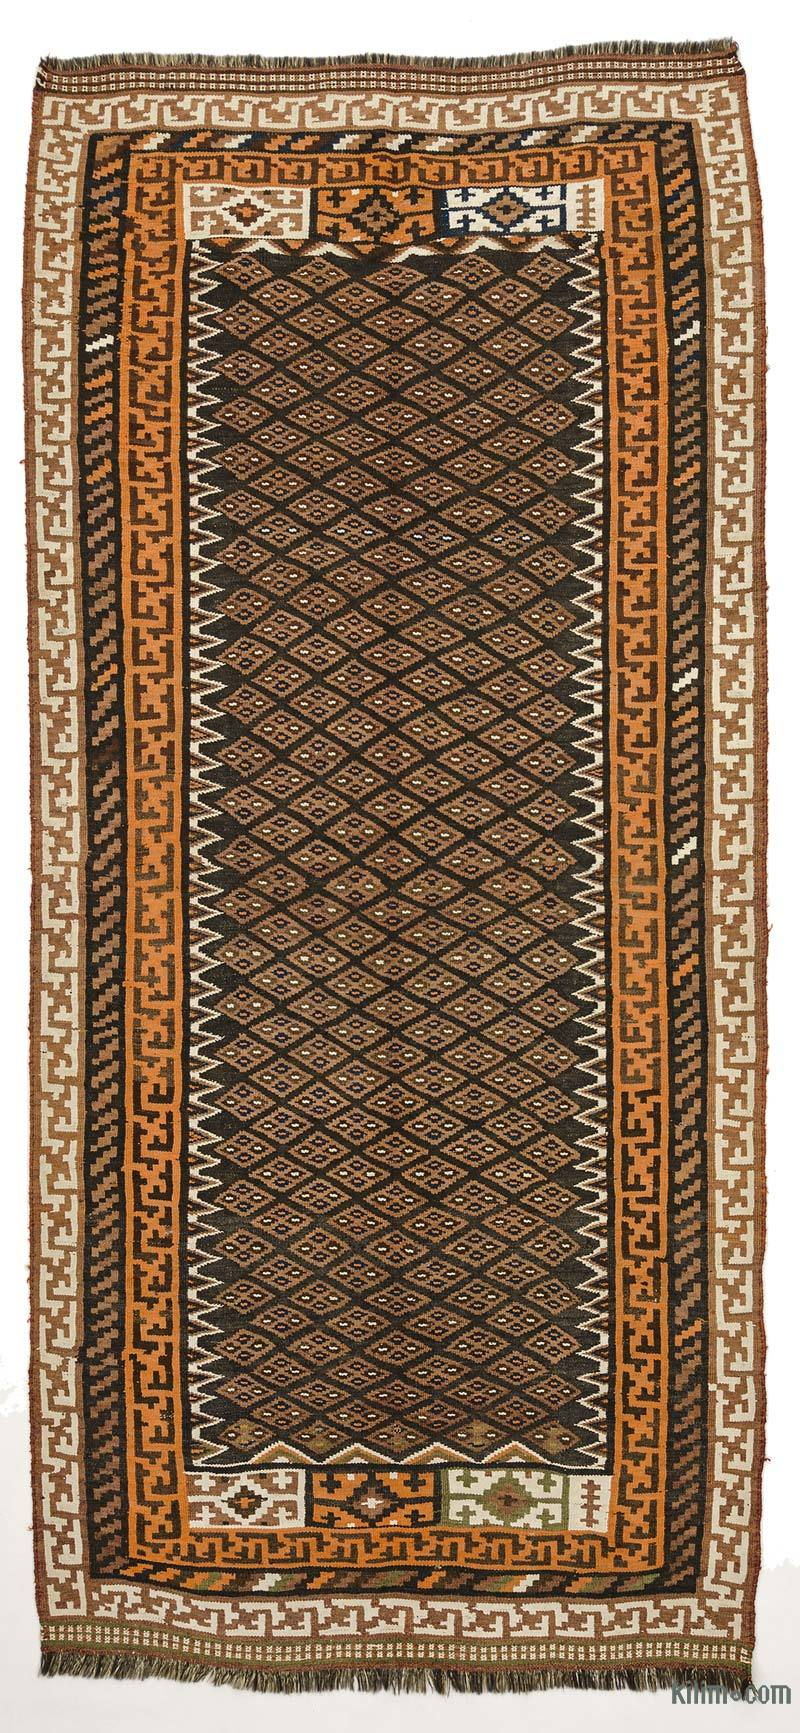 k0015311 brown vintage shiraz kilim rug. Black Bedroom Furniture Sets. Home Design Ideas